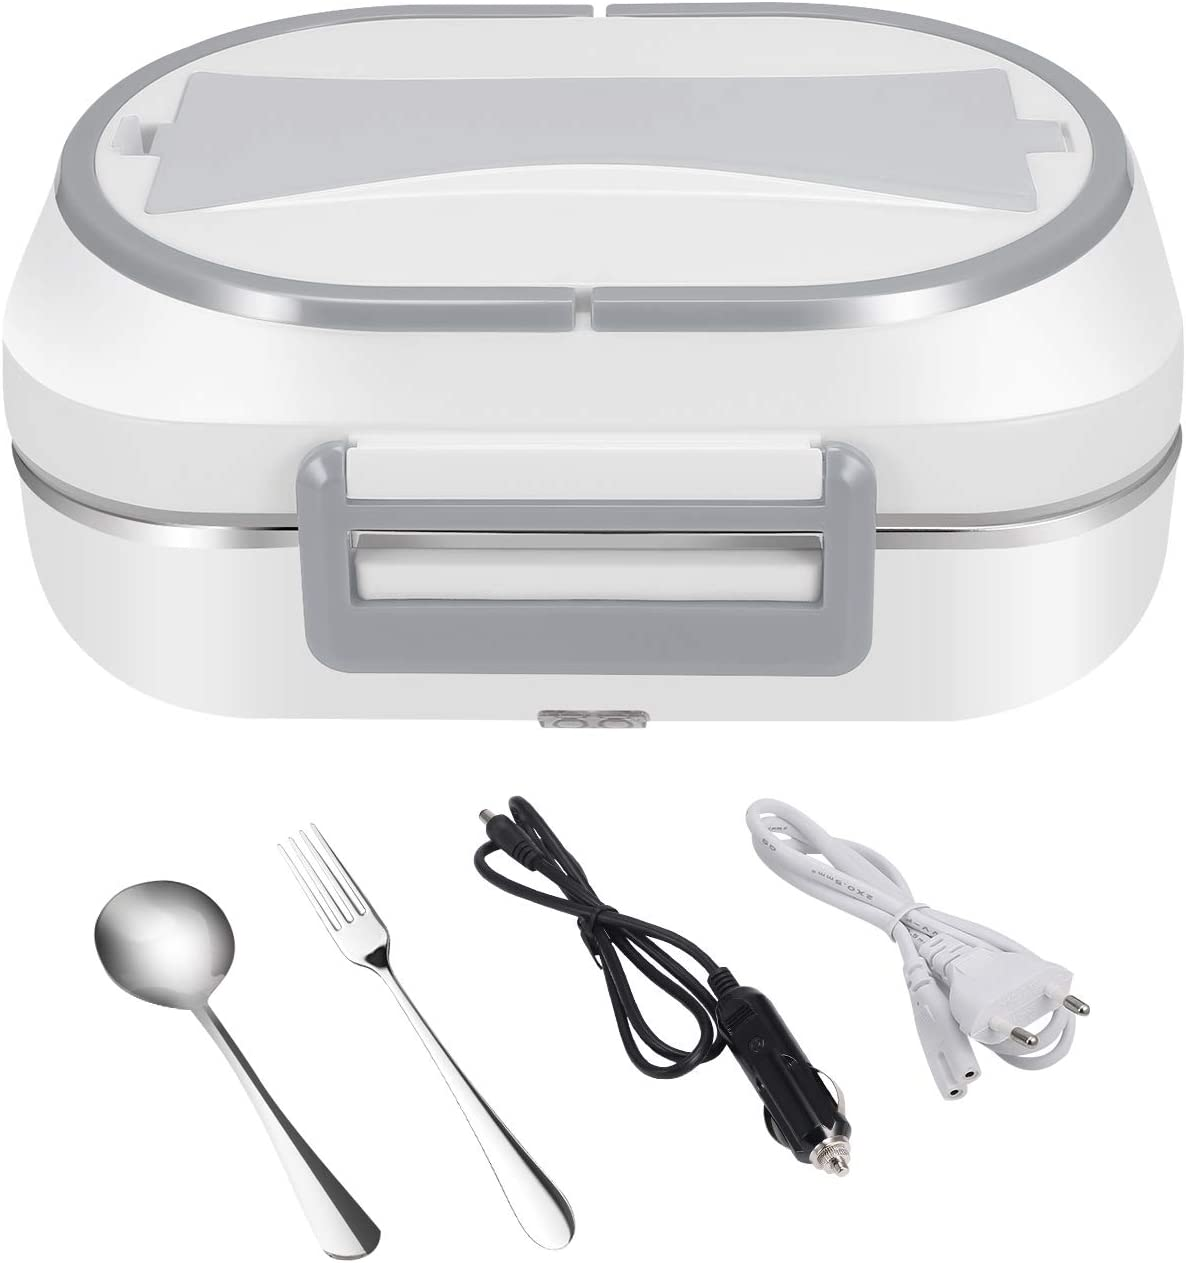 UUTO Electric Heating Lunch Box Food Heater Portable Food Warmer for Car Office Home with 304 Stainless Steel Container, 12V & 24V for Car/Truck & 110V for Home/Office